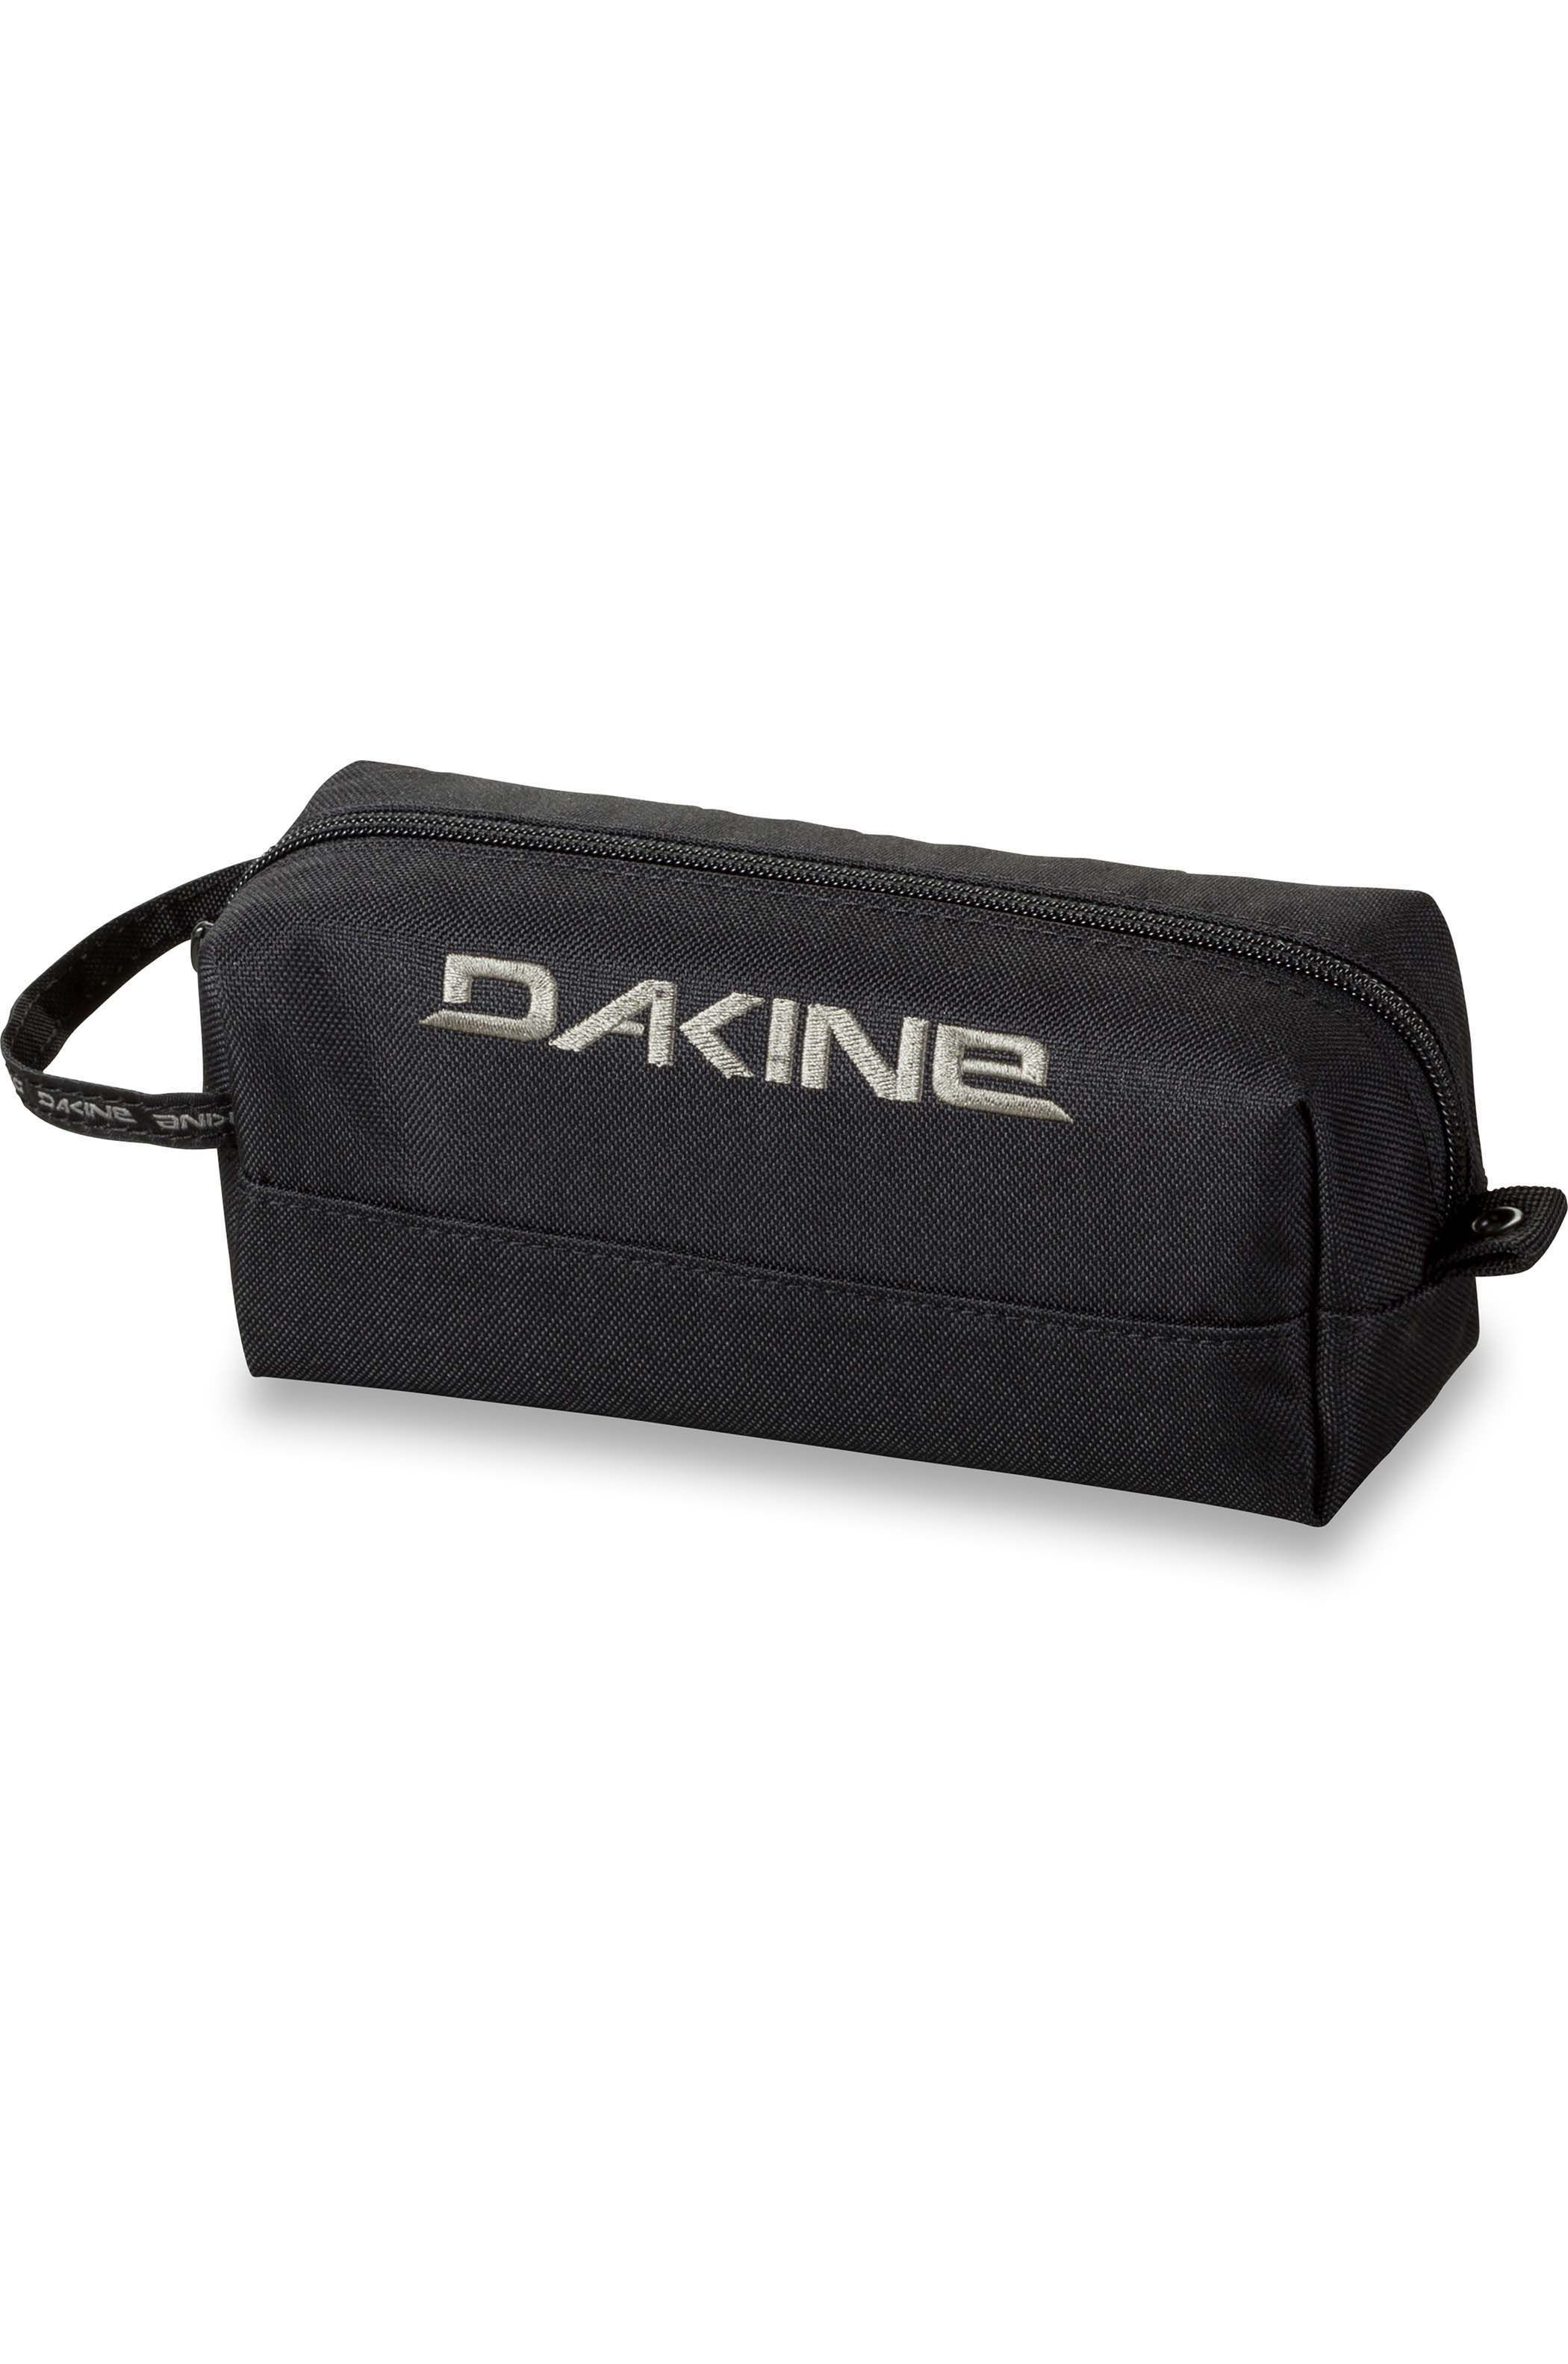 Estojo Dakine ACCESSORY Black